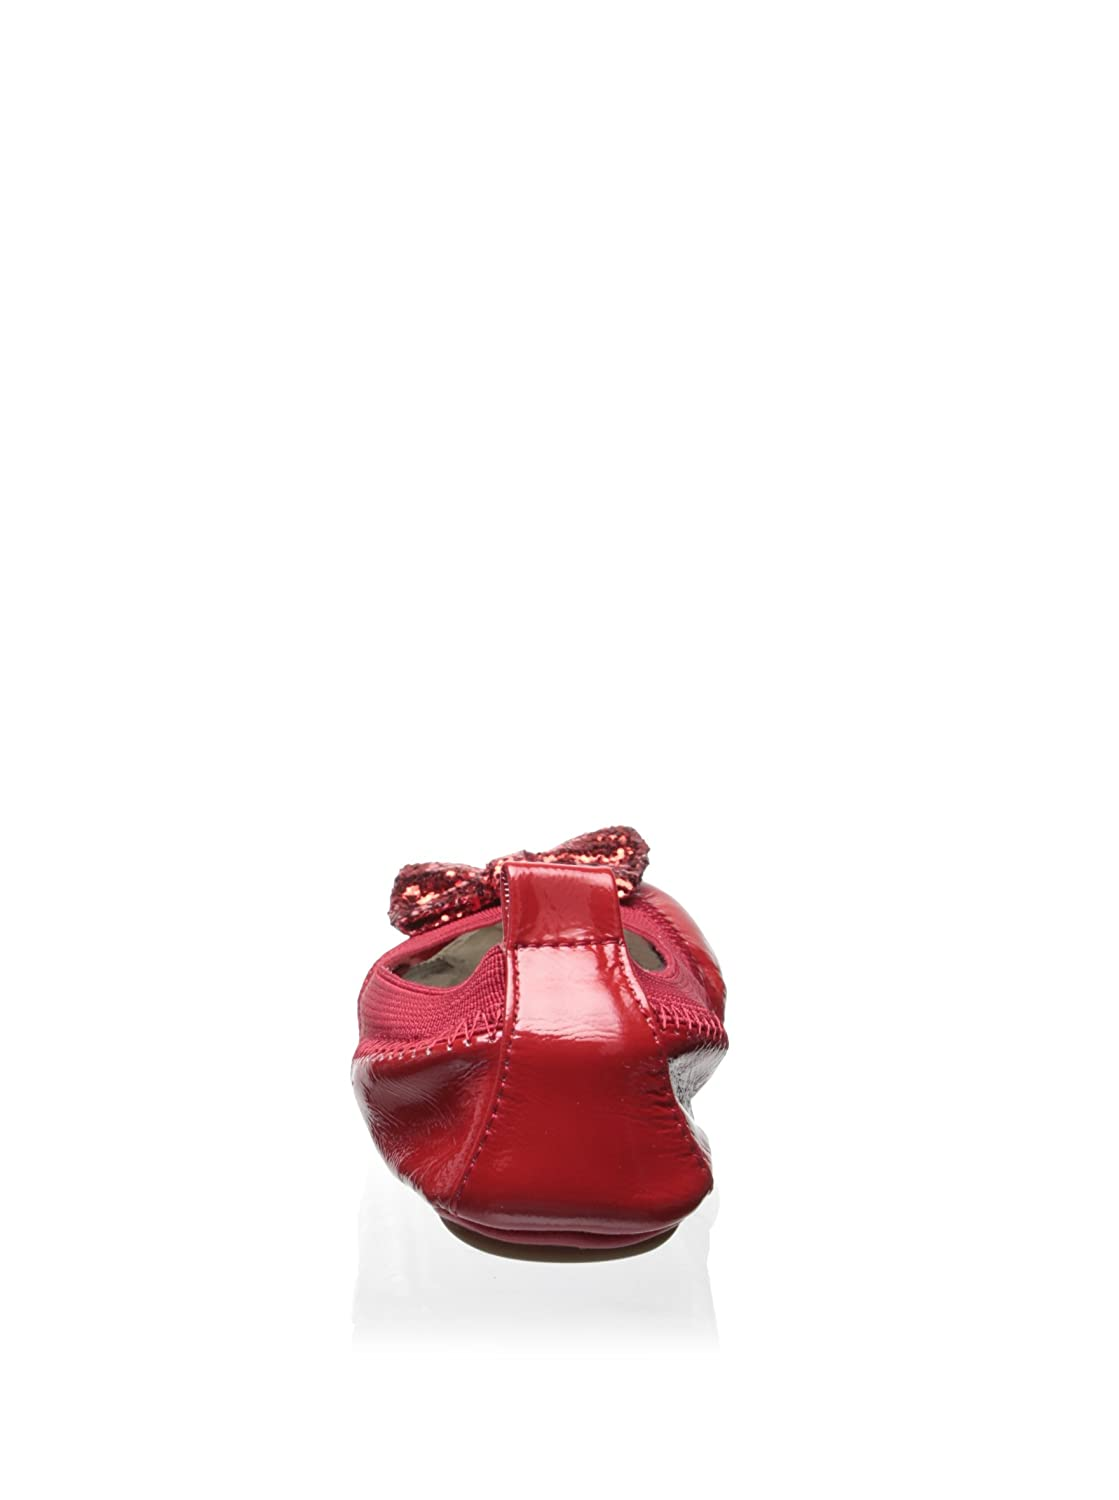 Yosi Samra Patent Leather Bendable Ballet Flat with Red Chunky Glitter Bow 6C//Infant